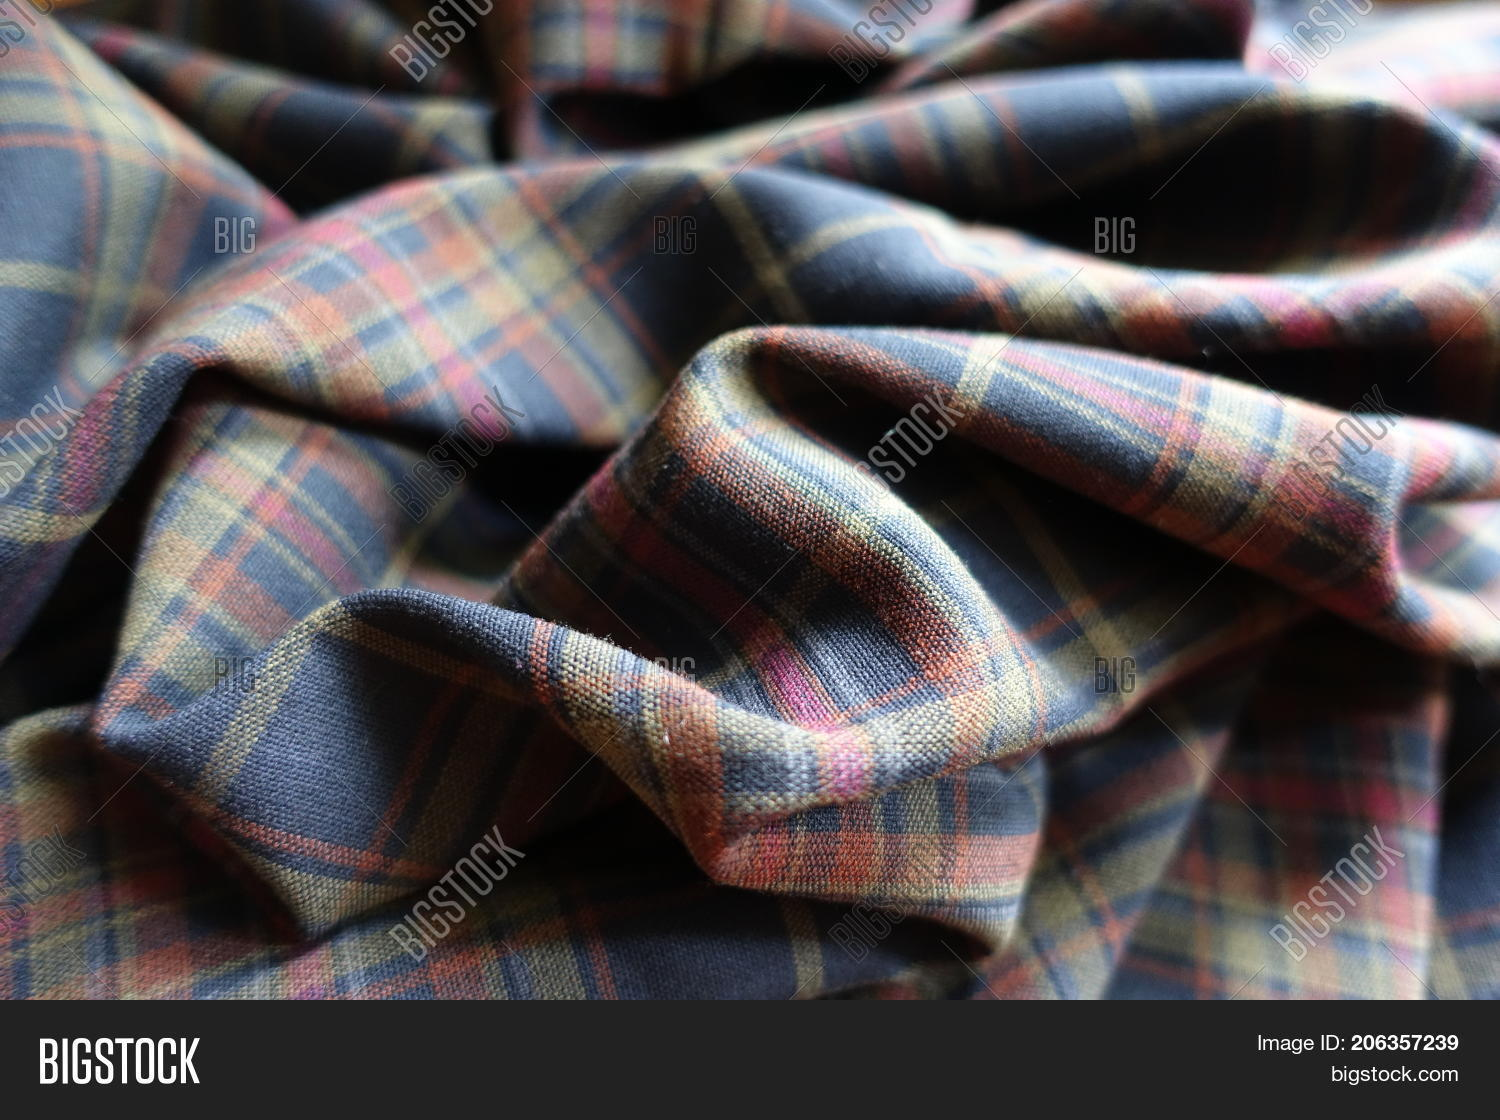 folded thick plaid image photo free trial bigstock folded thick plaid image photo free